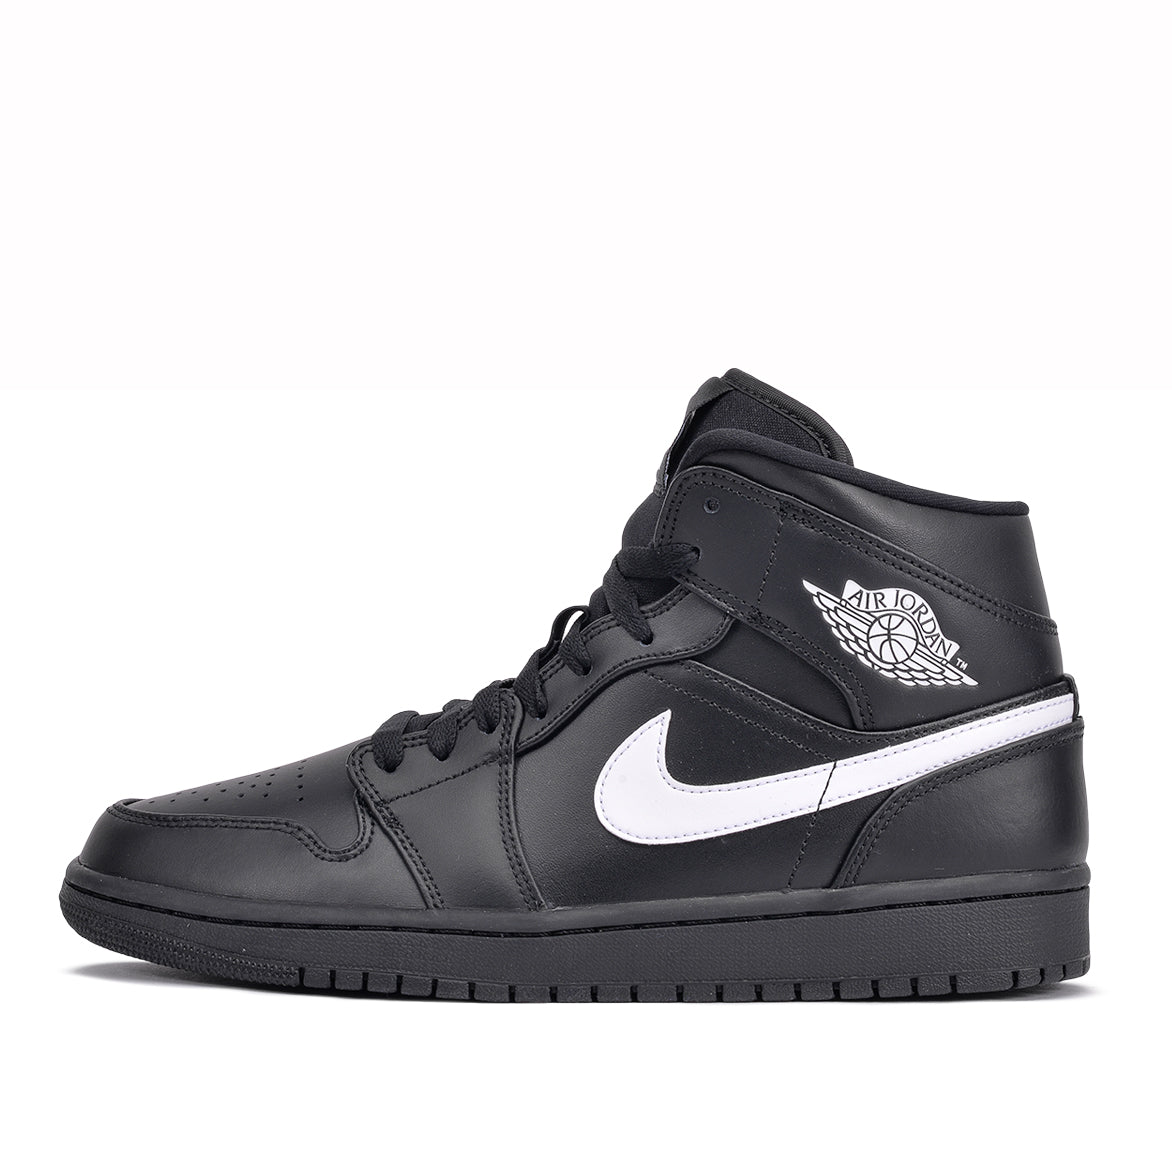 new arrival 1b95f e5d07 AIR JORDAN 1 MID - BLACK / WHITE